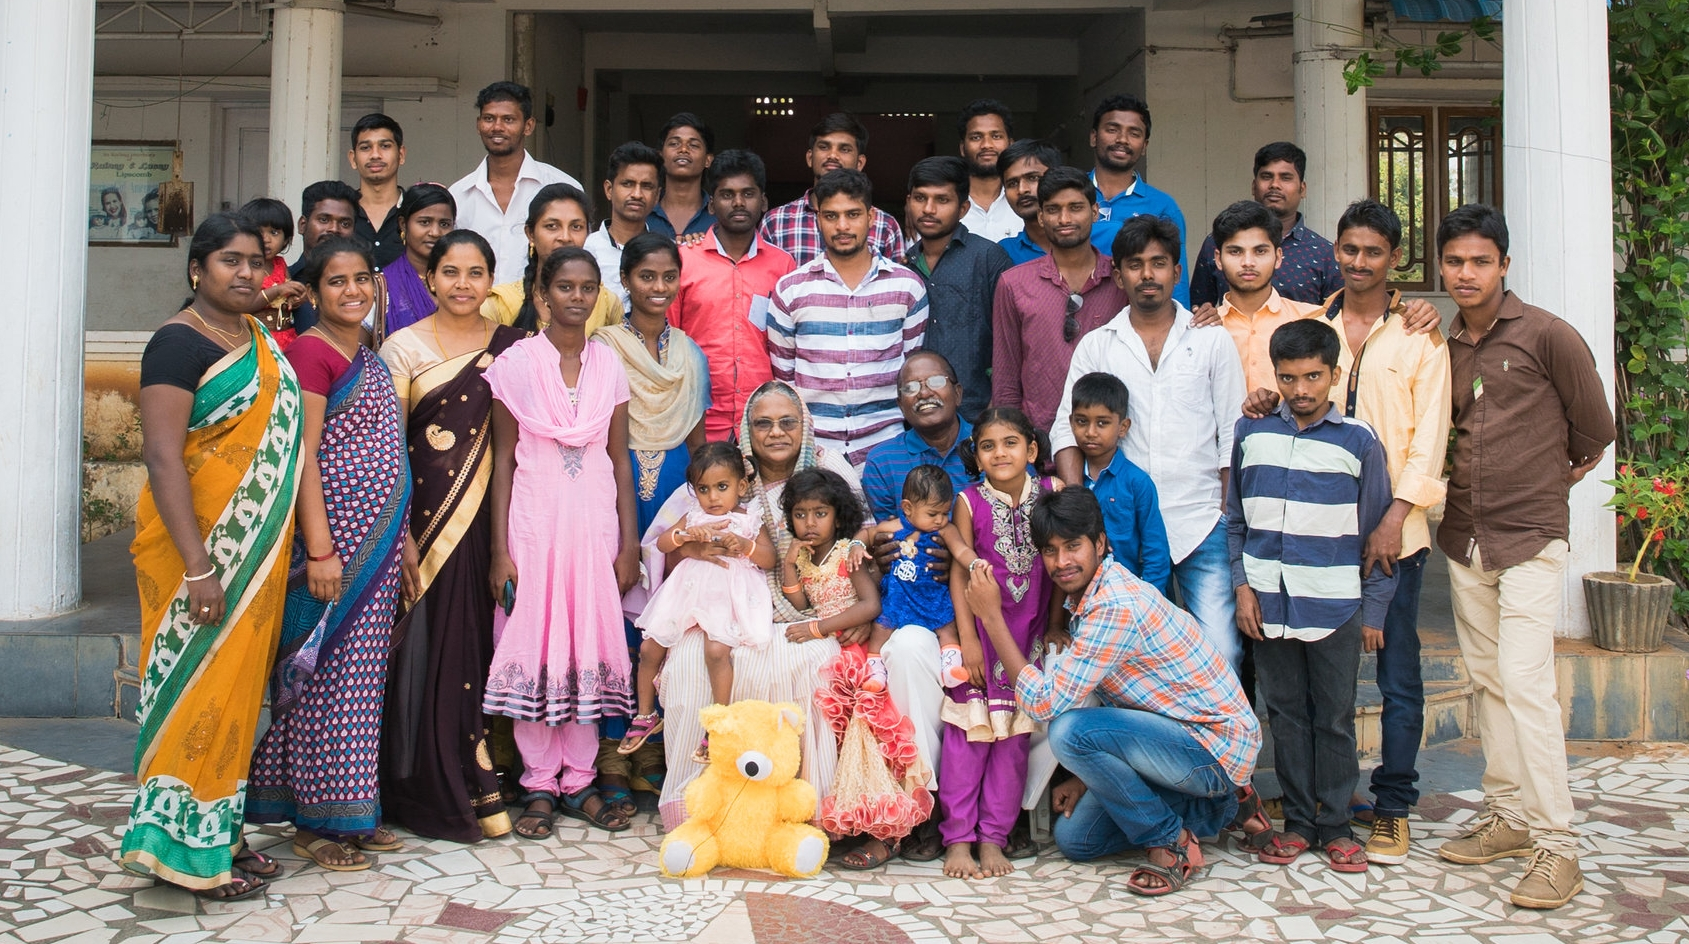 2017  - We host many now grown children who were residents of the children's home who share their stories with us, and offer their thanks and support.